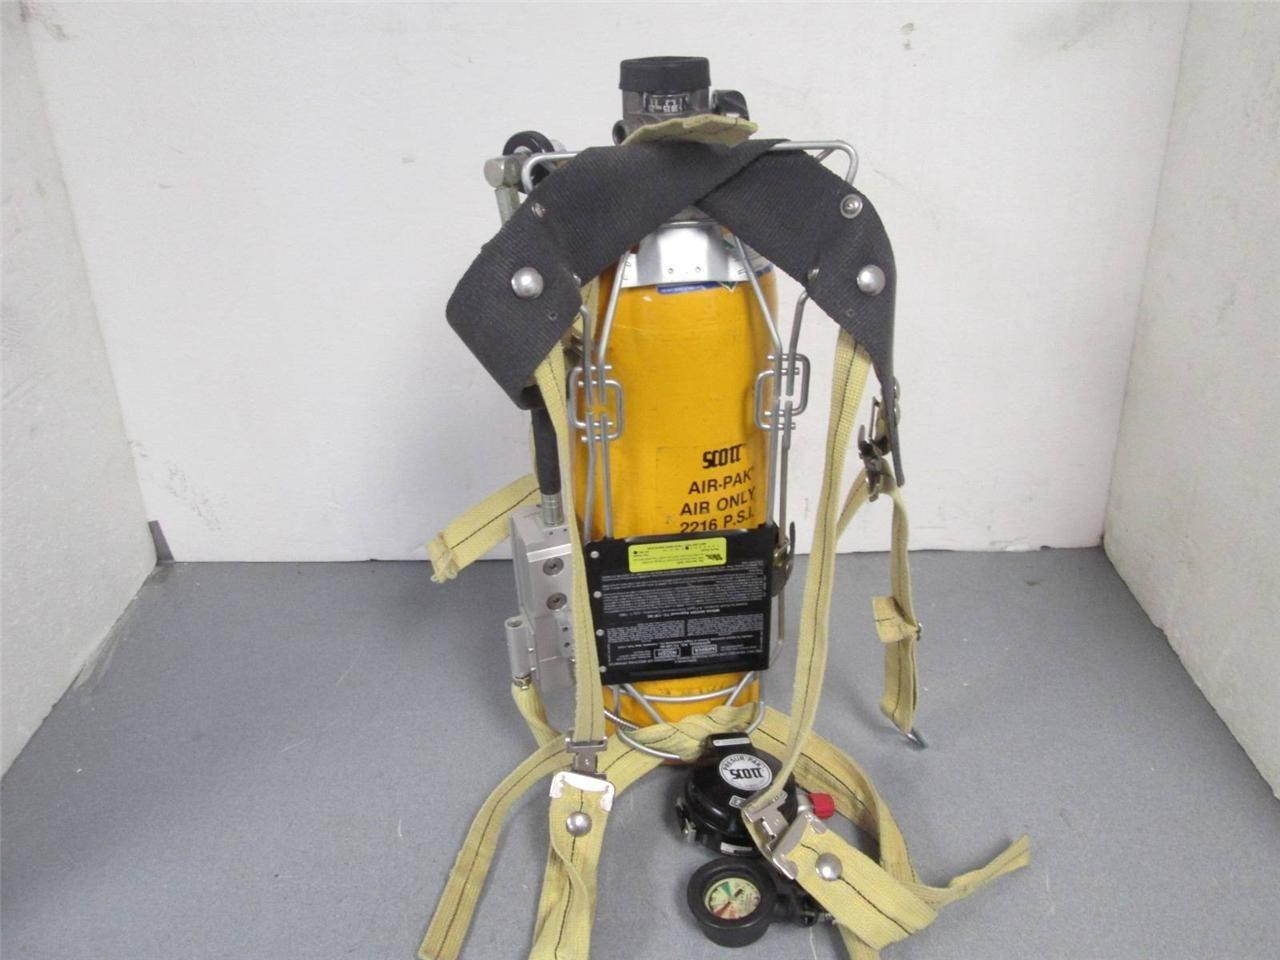 Scott Air Pak 30 Min Self Contained Breathing Apparatus W